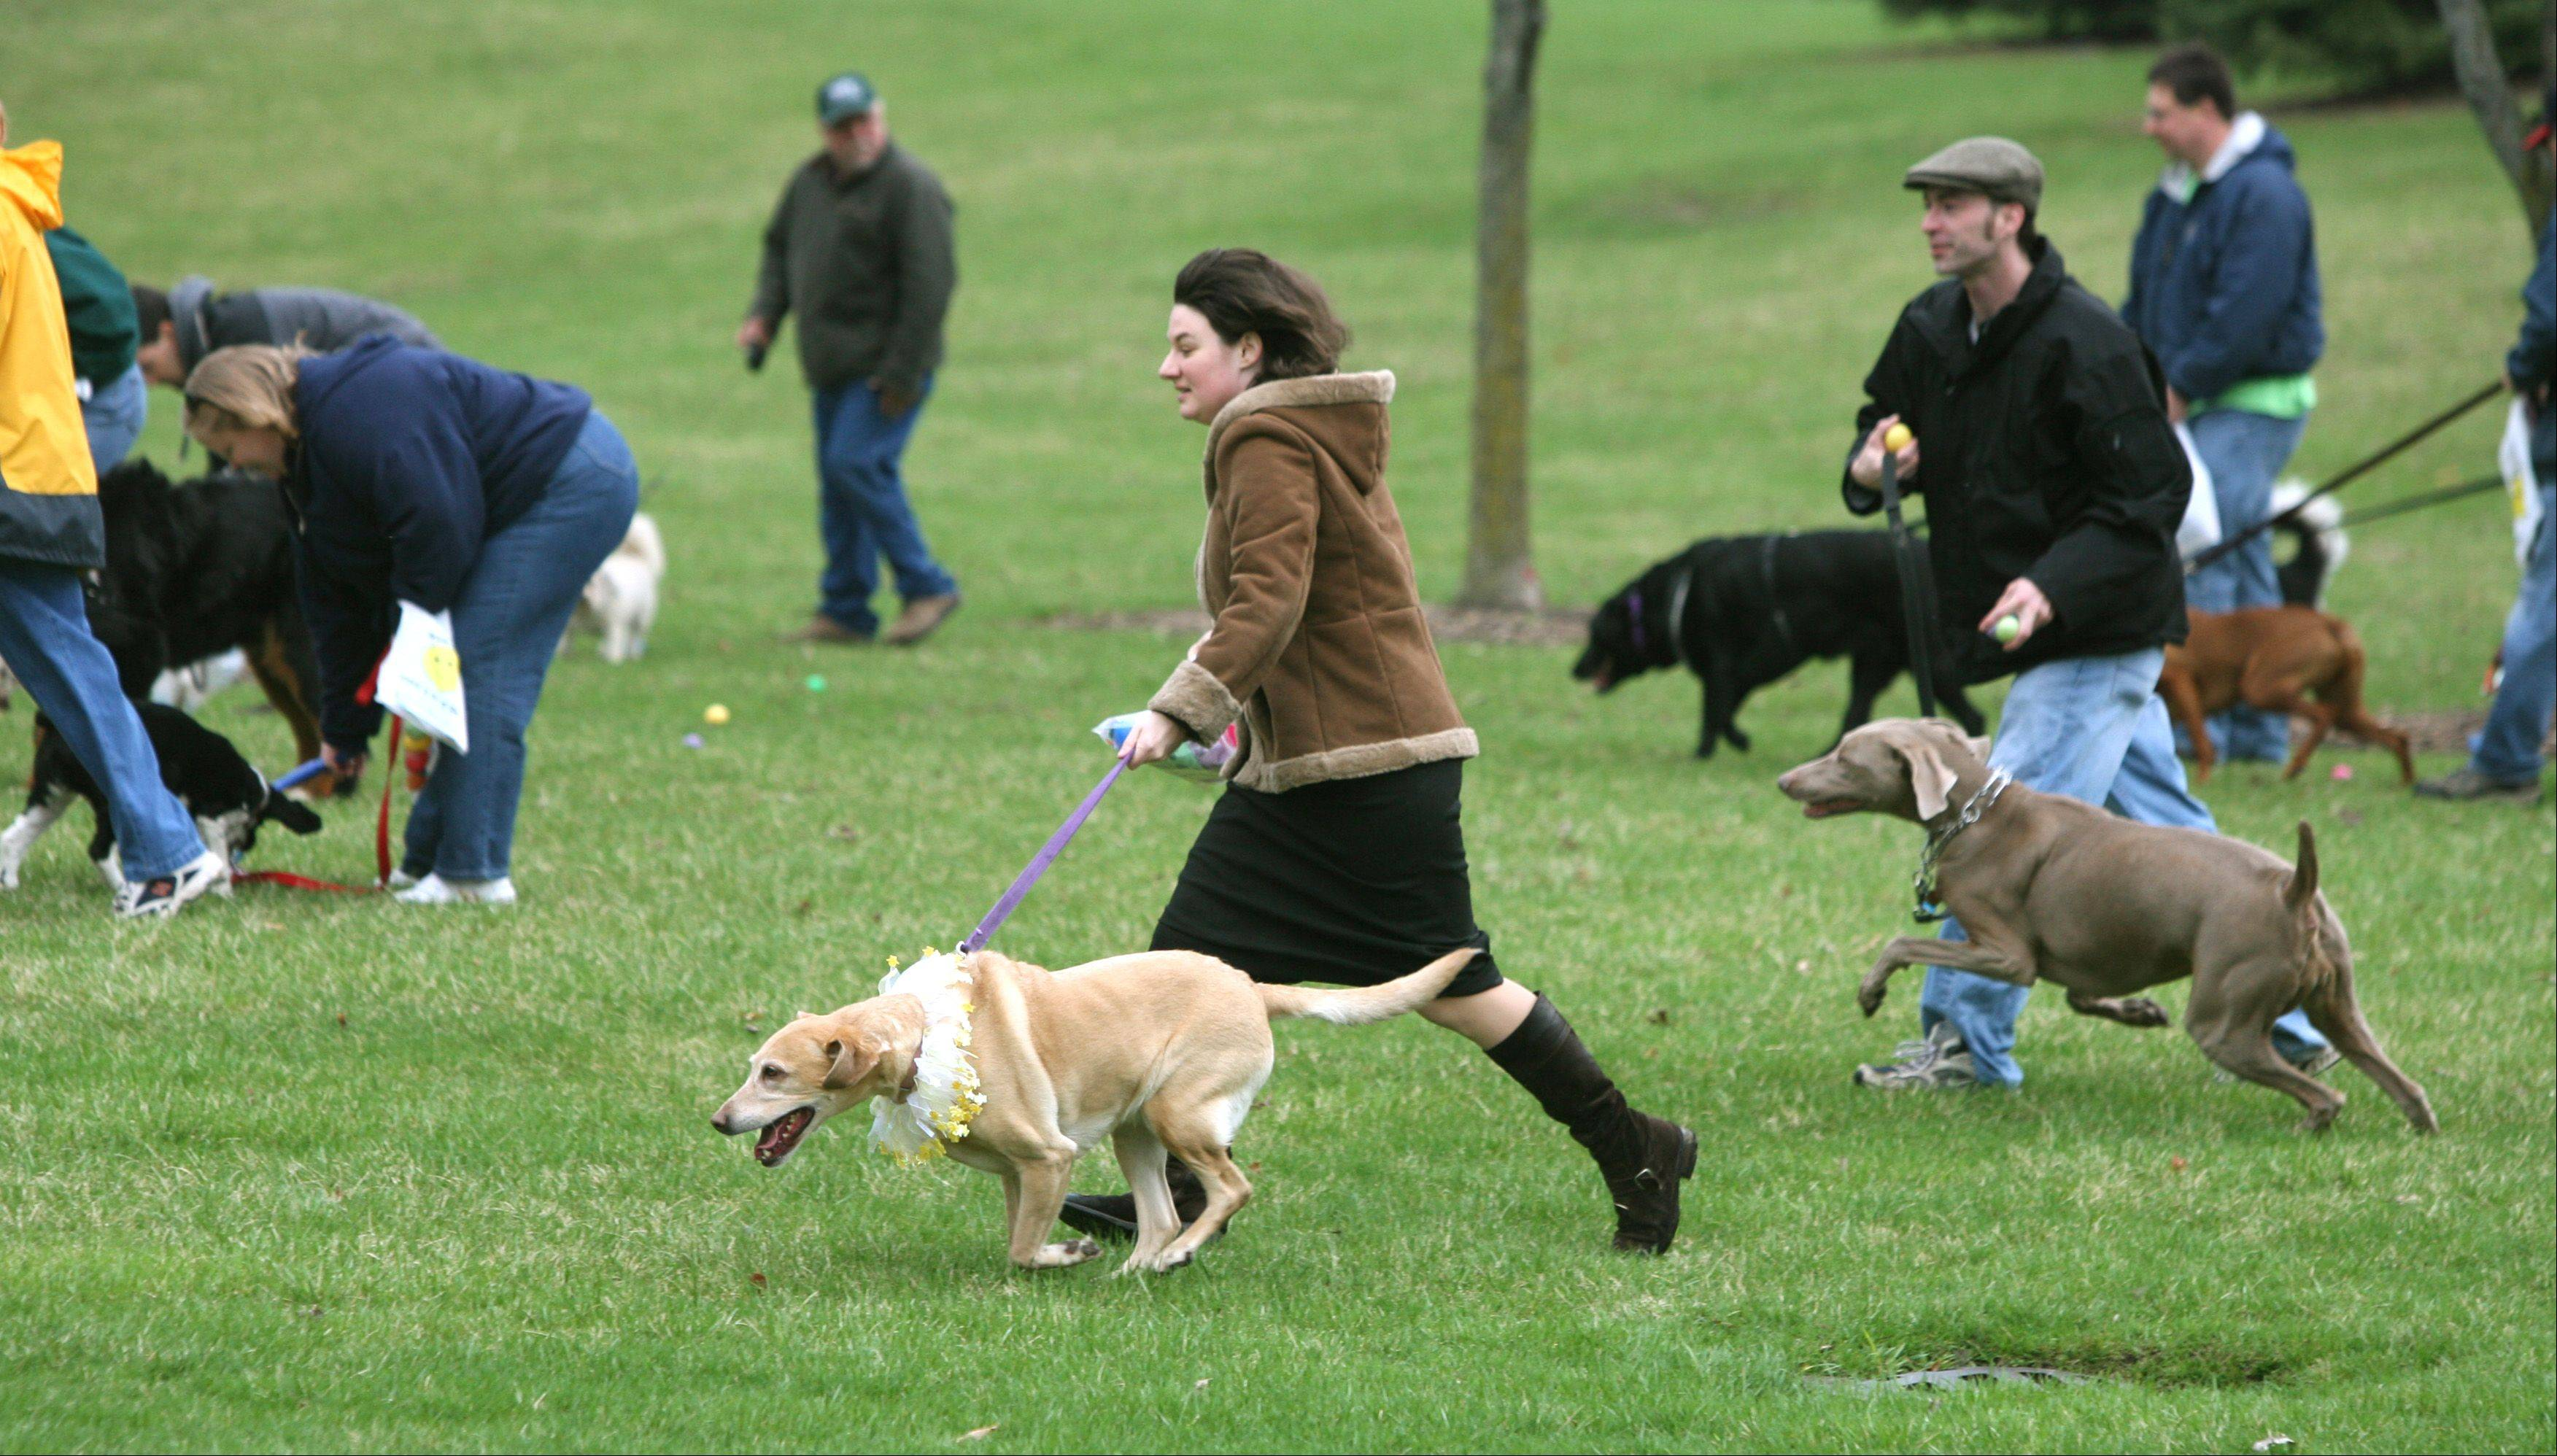 Even dogs will have a chance to hunt for eggs at several area egg hunts this season.